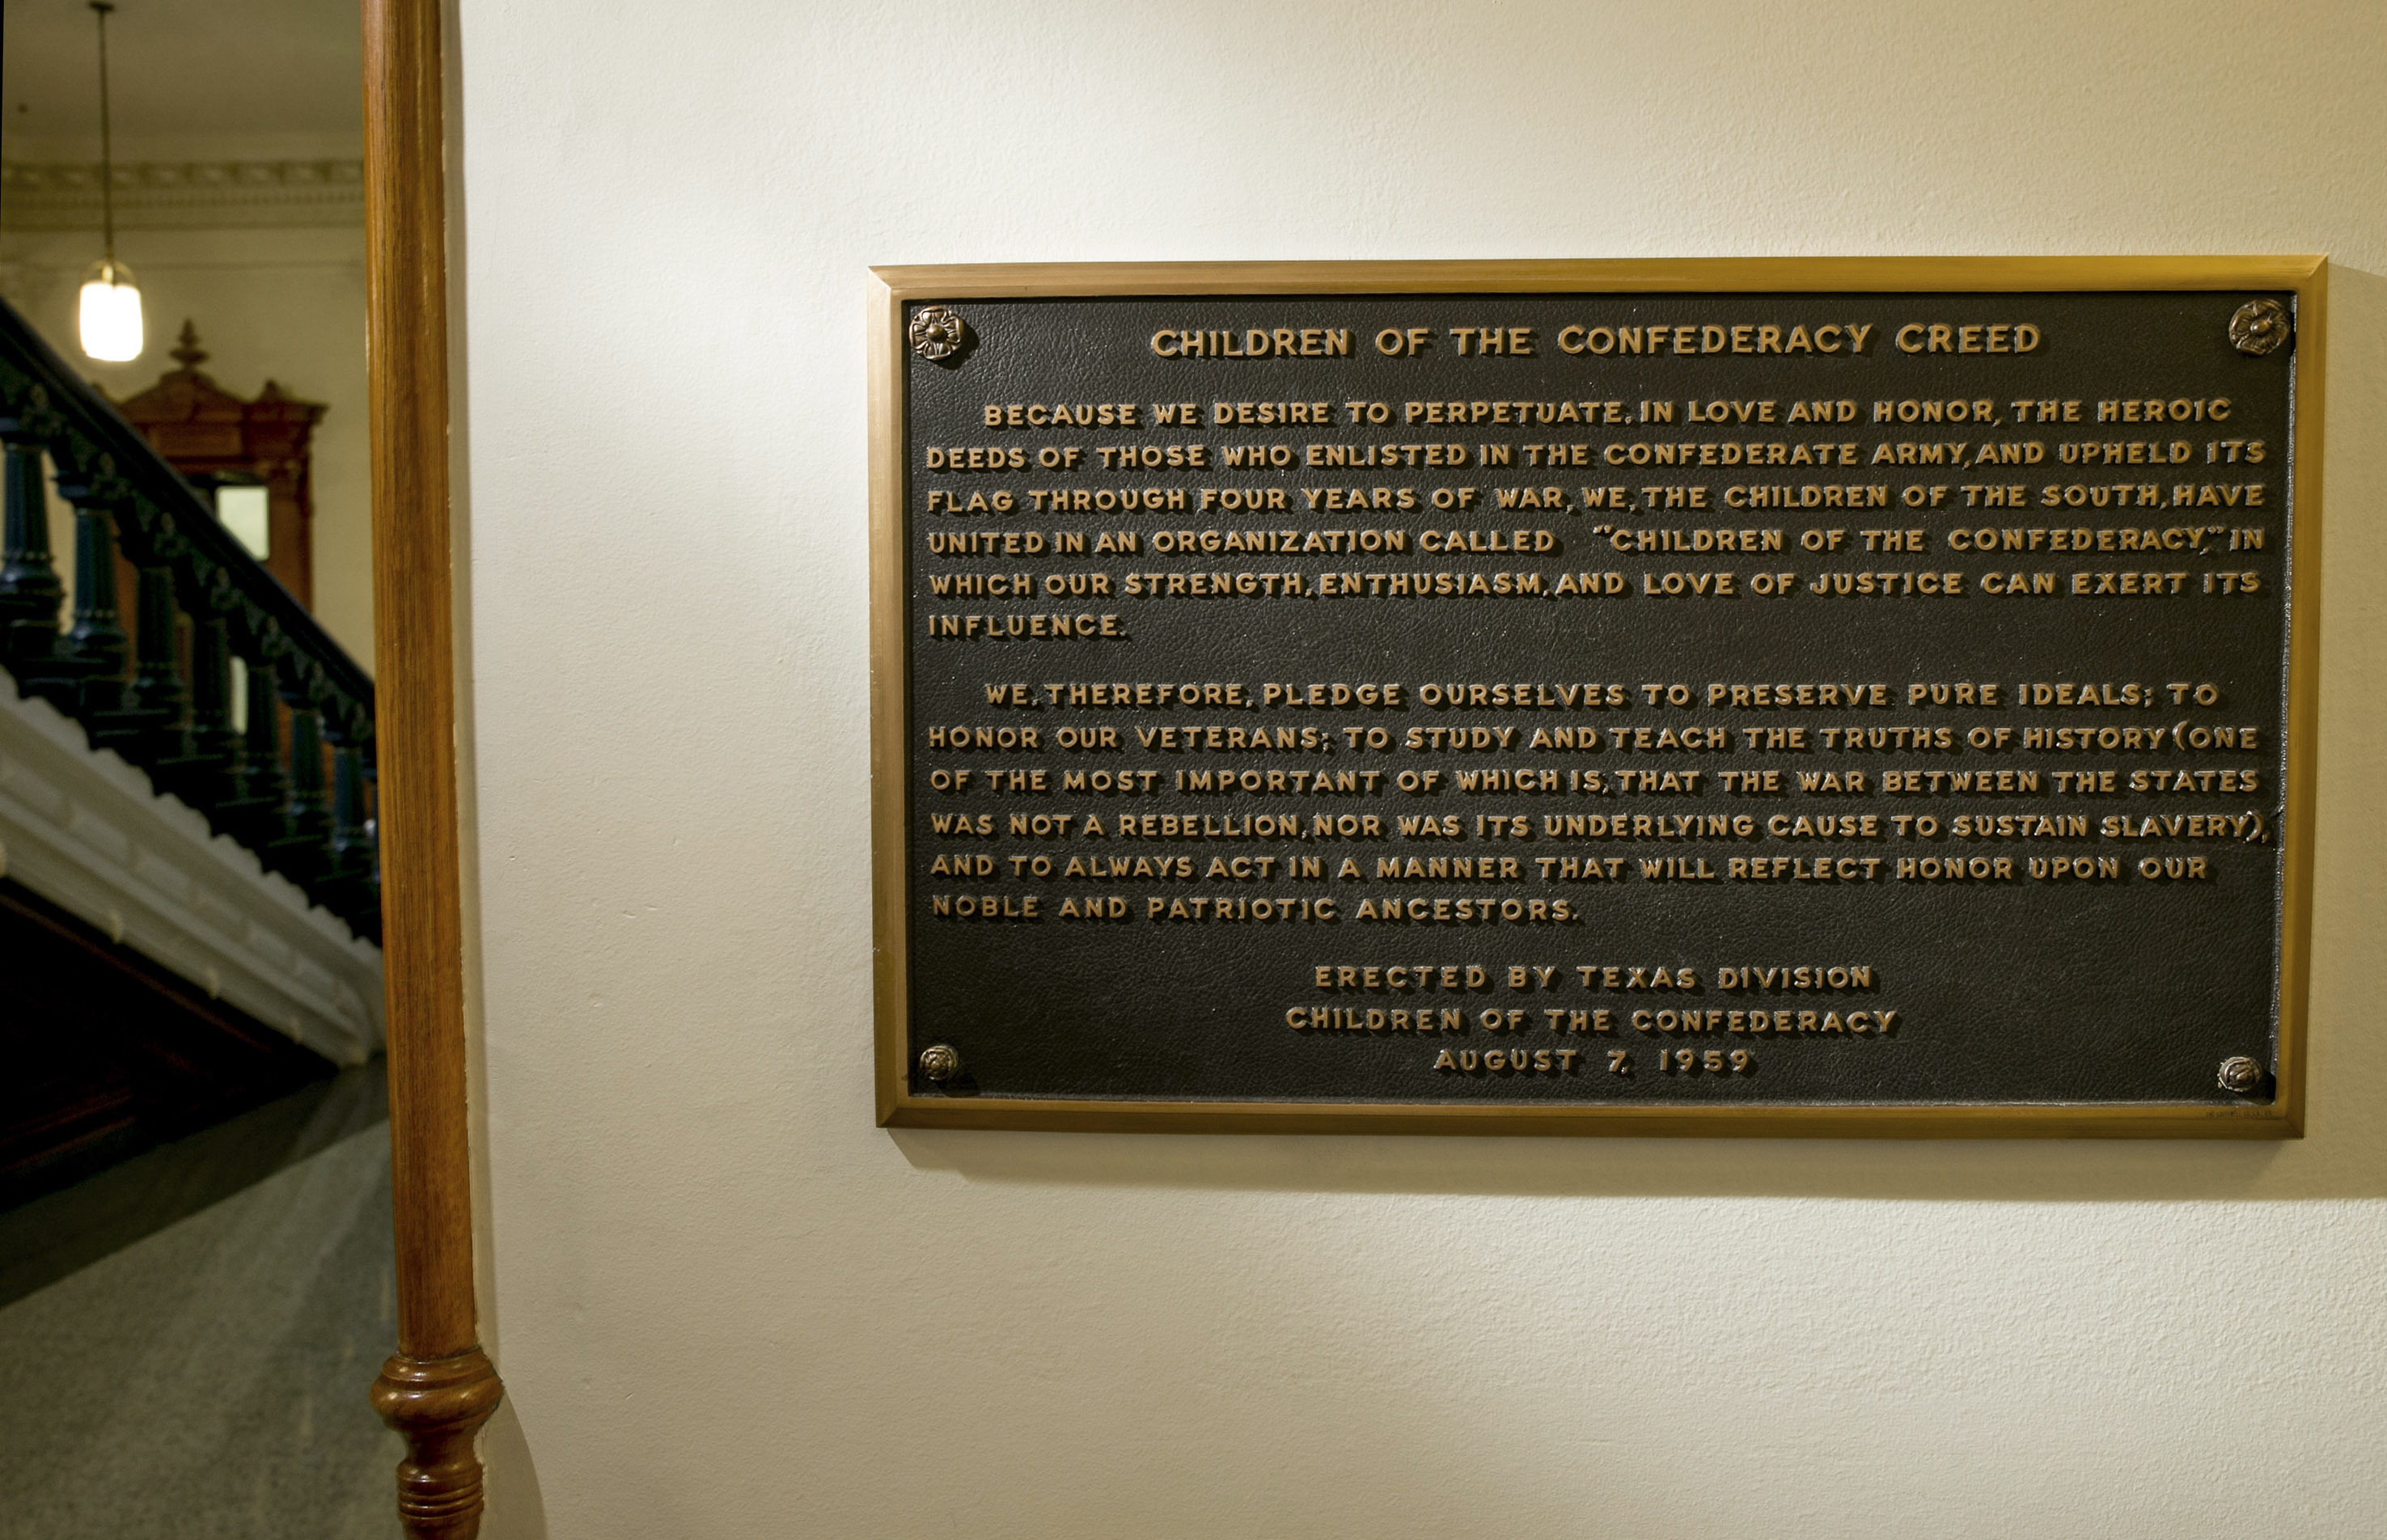 texas board votes to remove children of the confederacy creed plaque from state capitol washington times